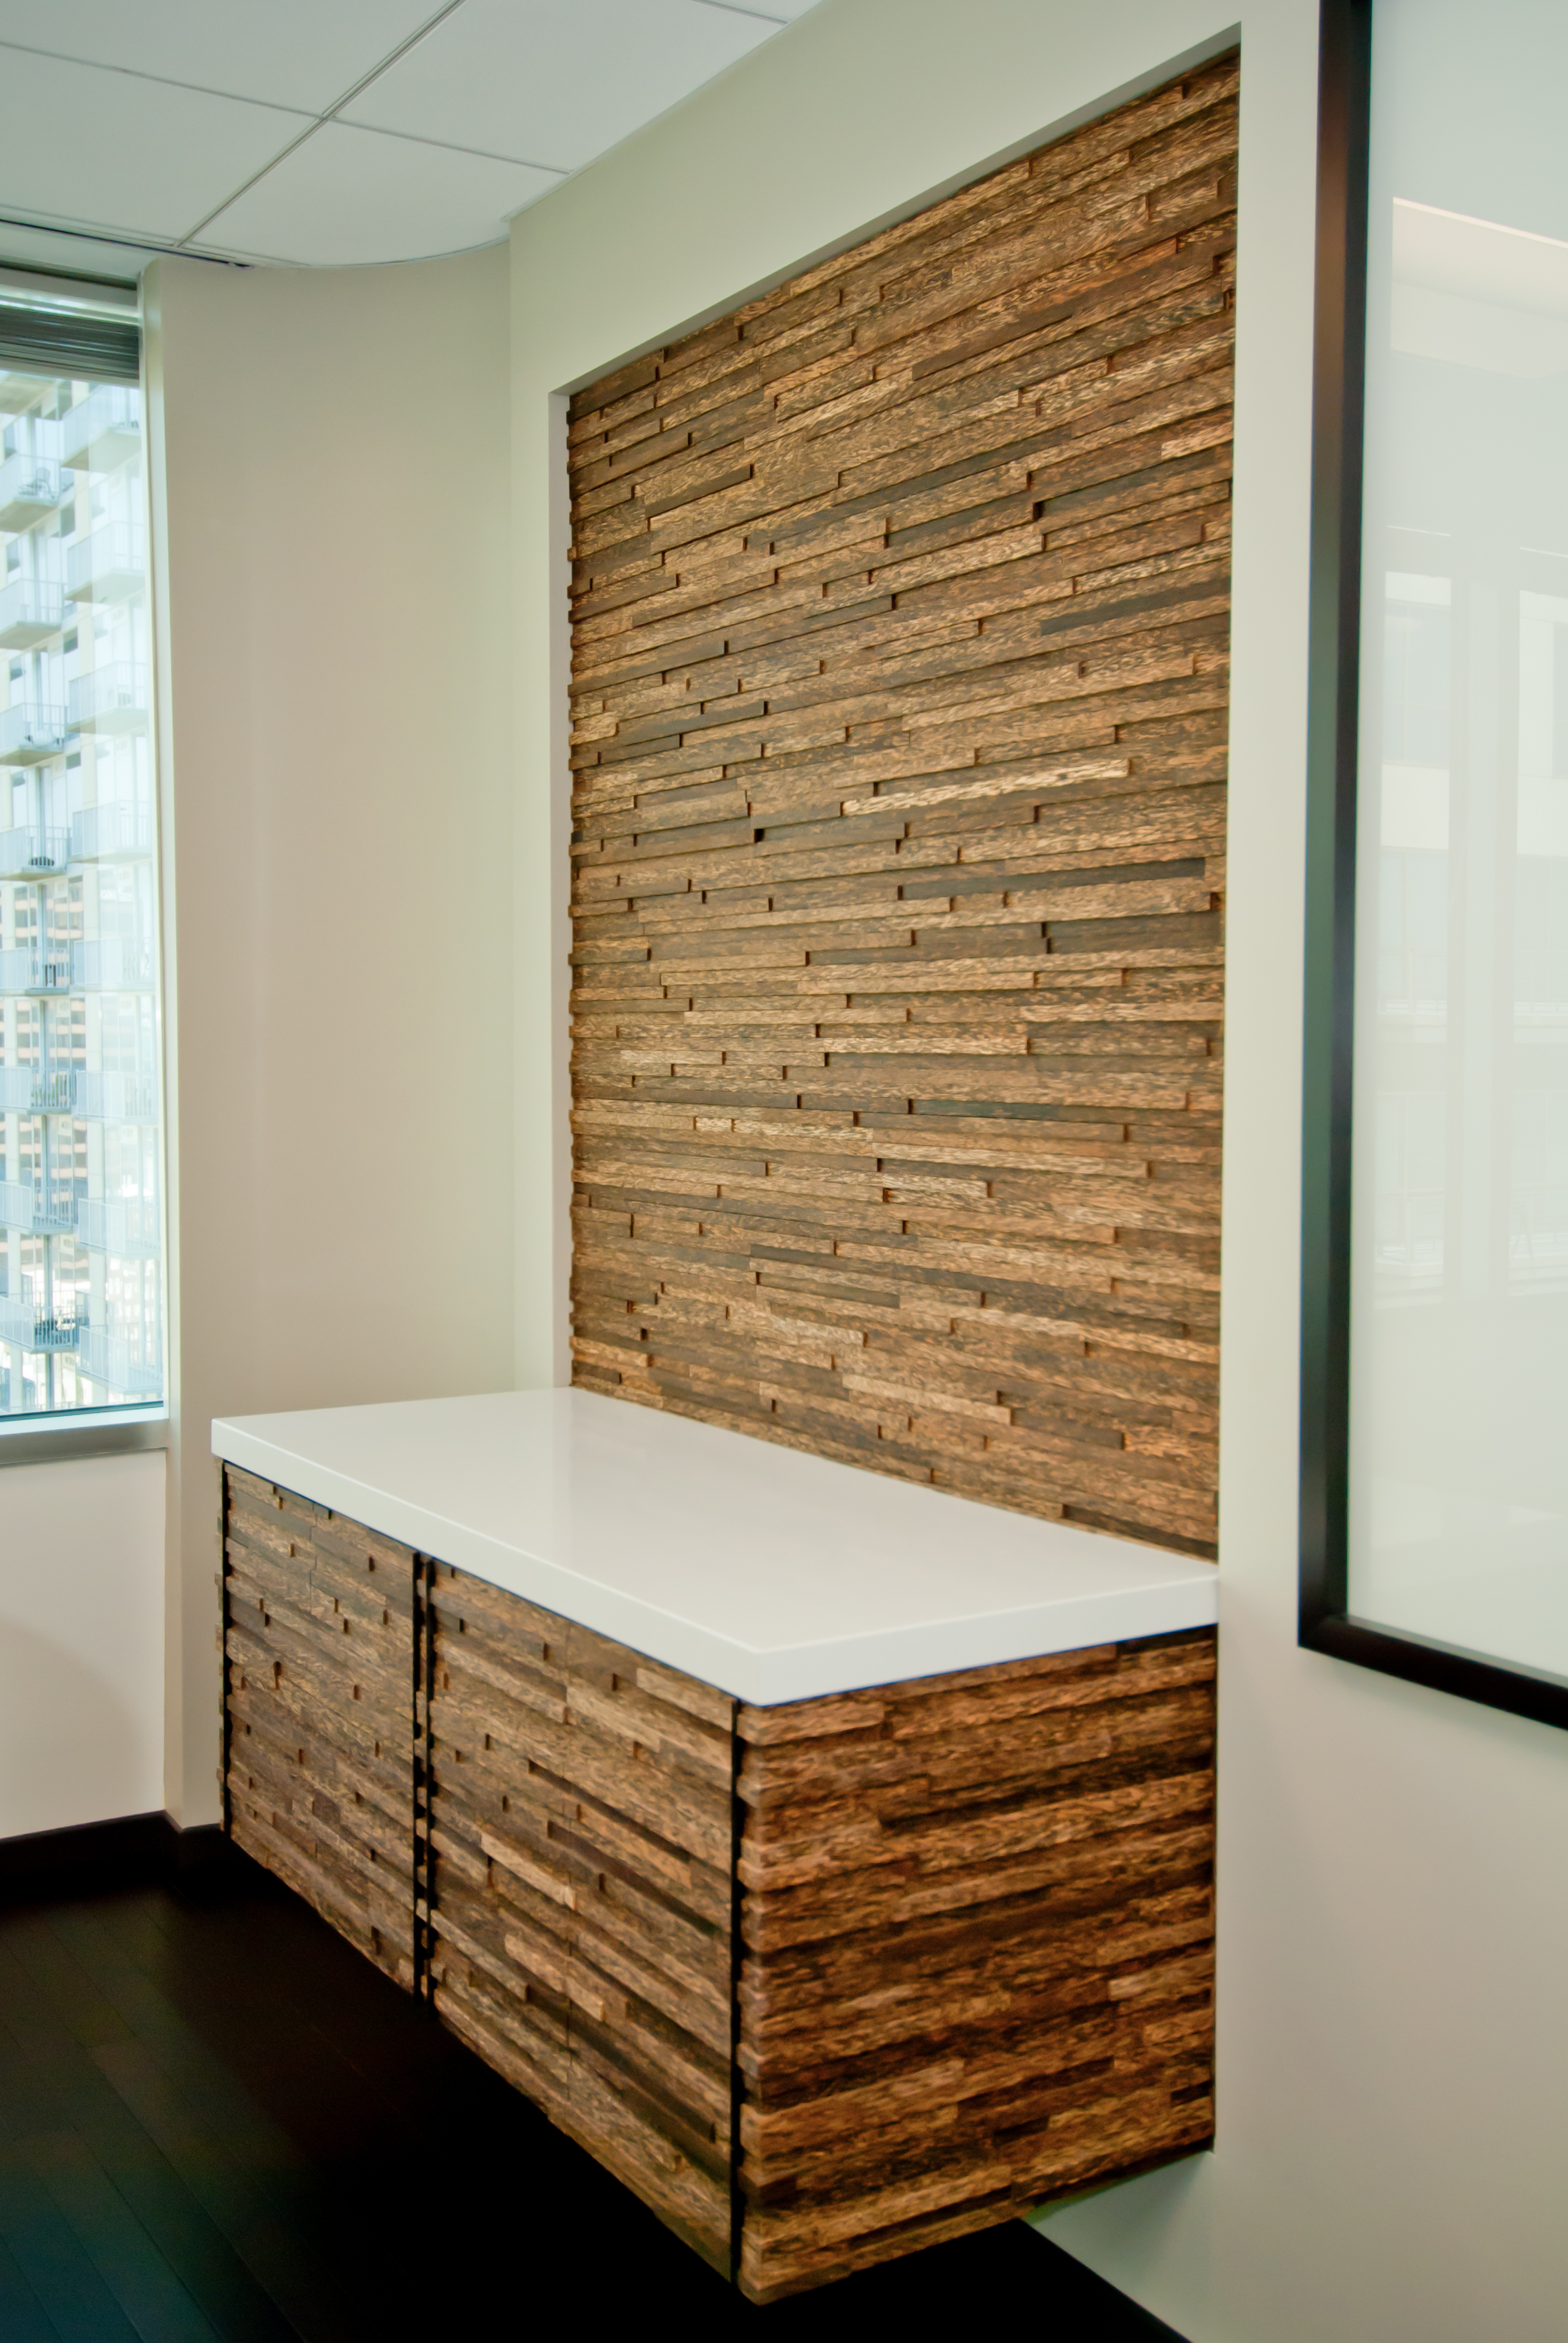 Iq plyboo paneling decopalm - Woven wood wall panels ...